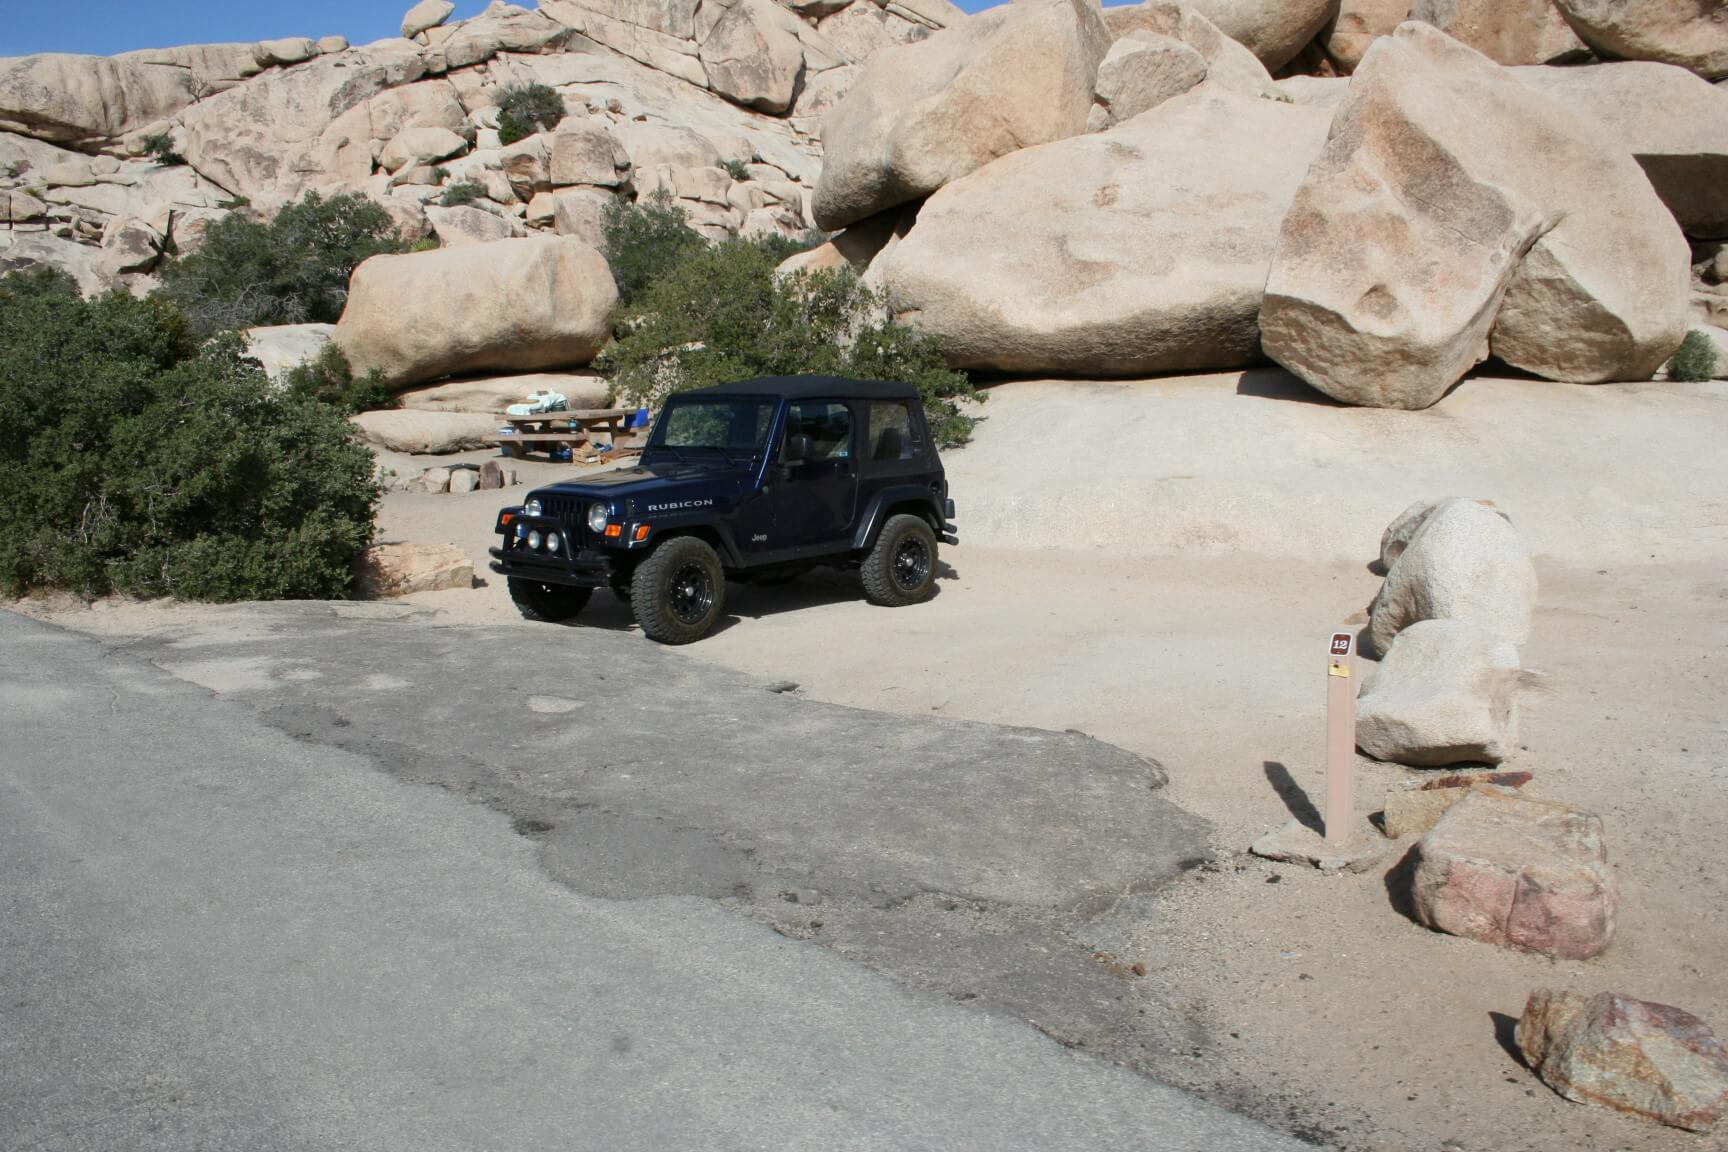 Joshua Tree National Park's Best Campsites Hidden Valley #12